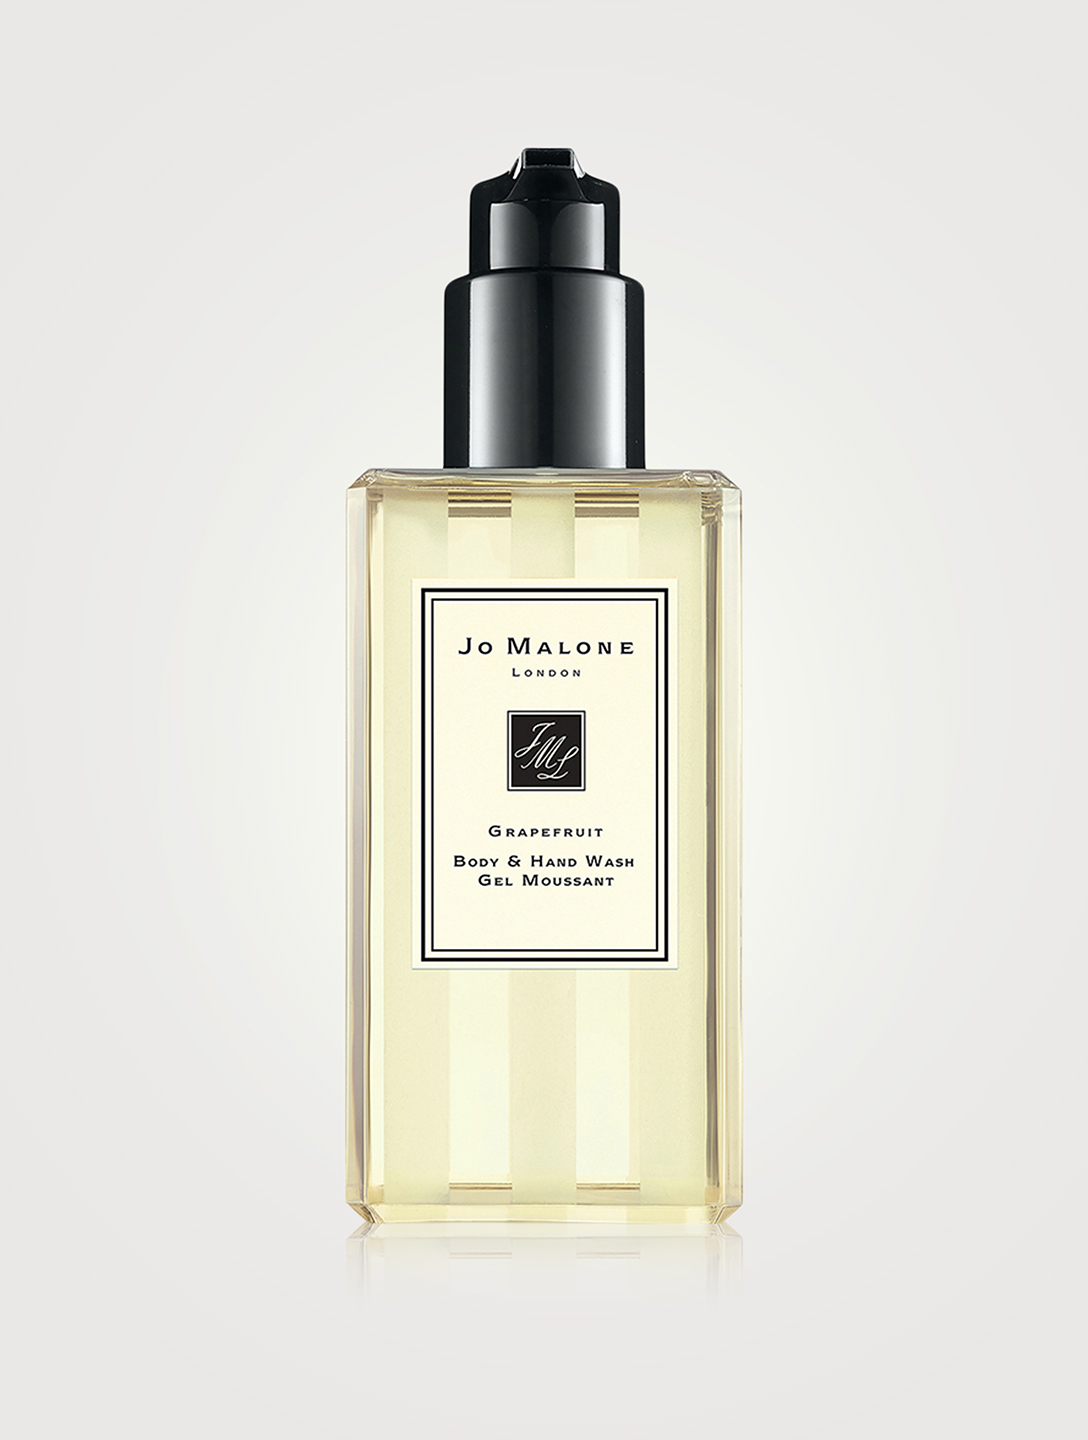 JO MALONE LONDON Grapefruit Body & Hand Wash Beauty